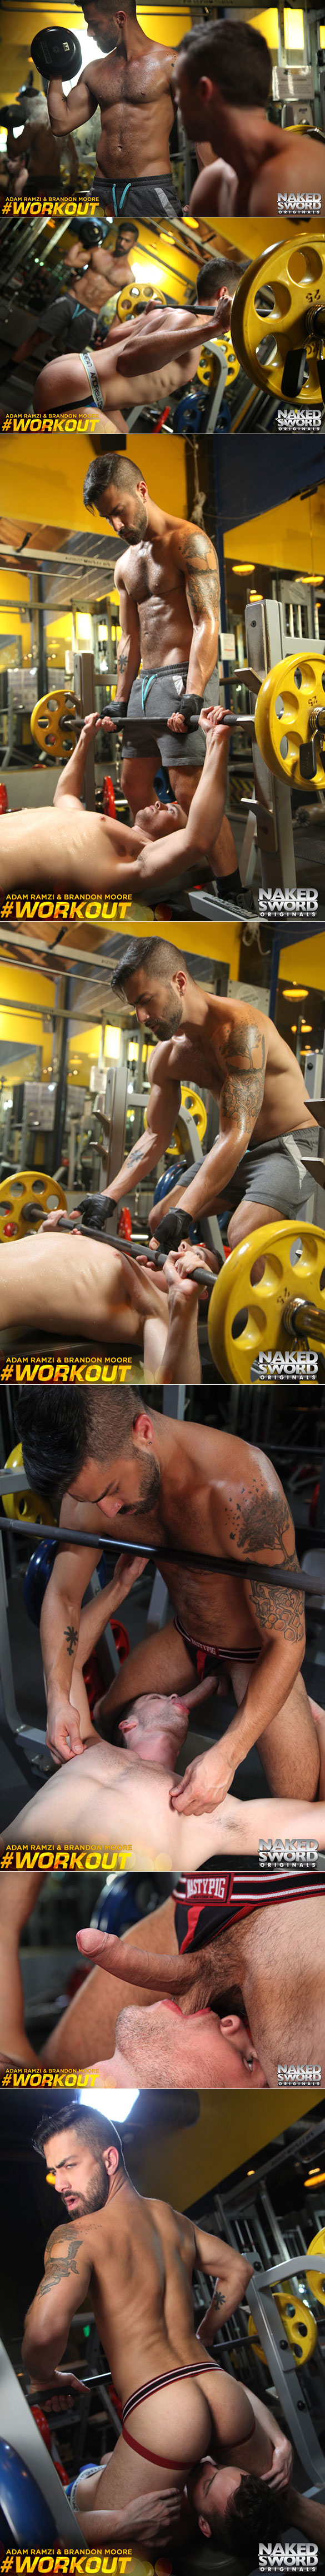 "NakedSword Originals: Adam Ramzi pounds Brandon Moore in ""#Workout, Episode 1: Gym-Tastic Loads"""